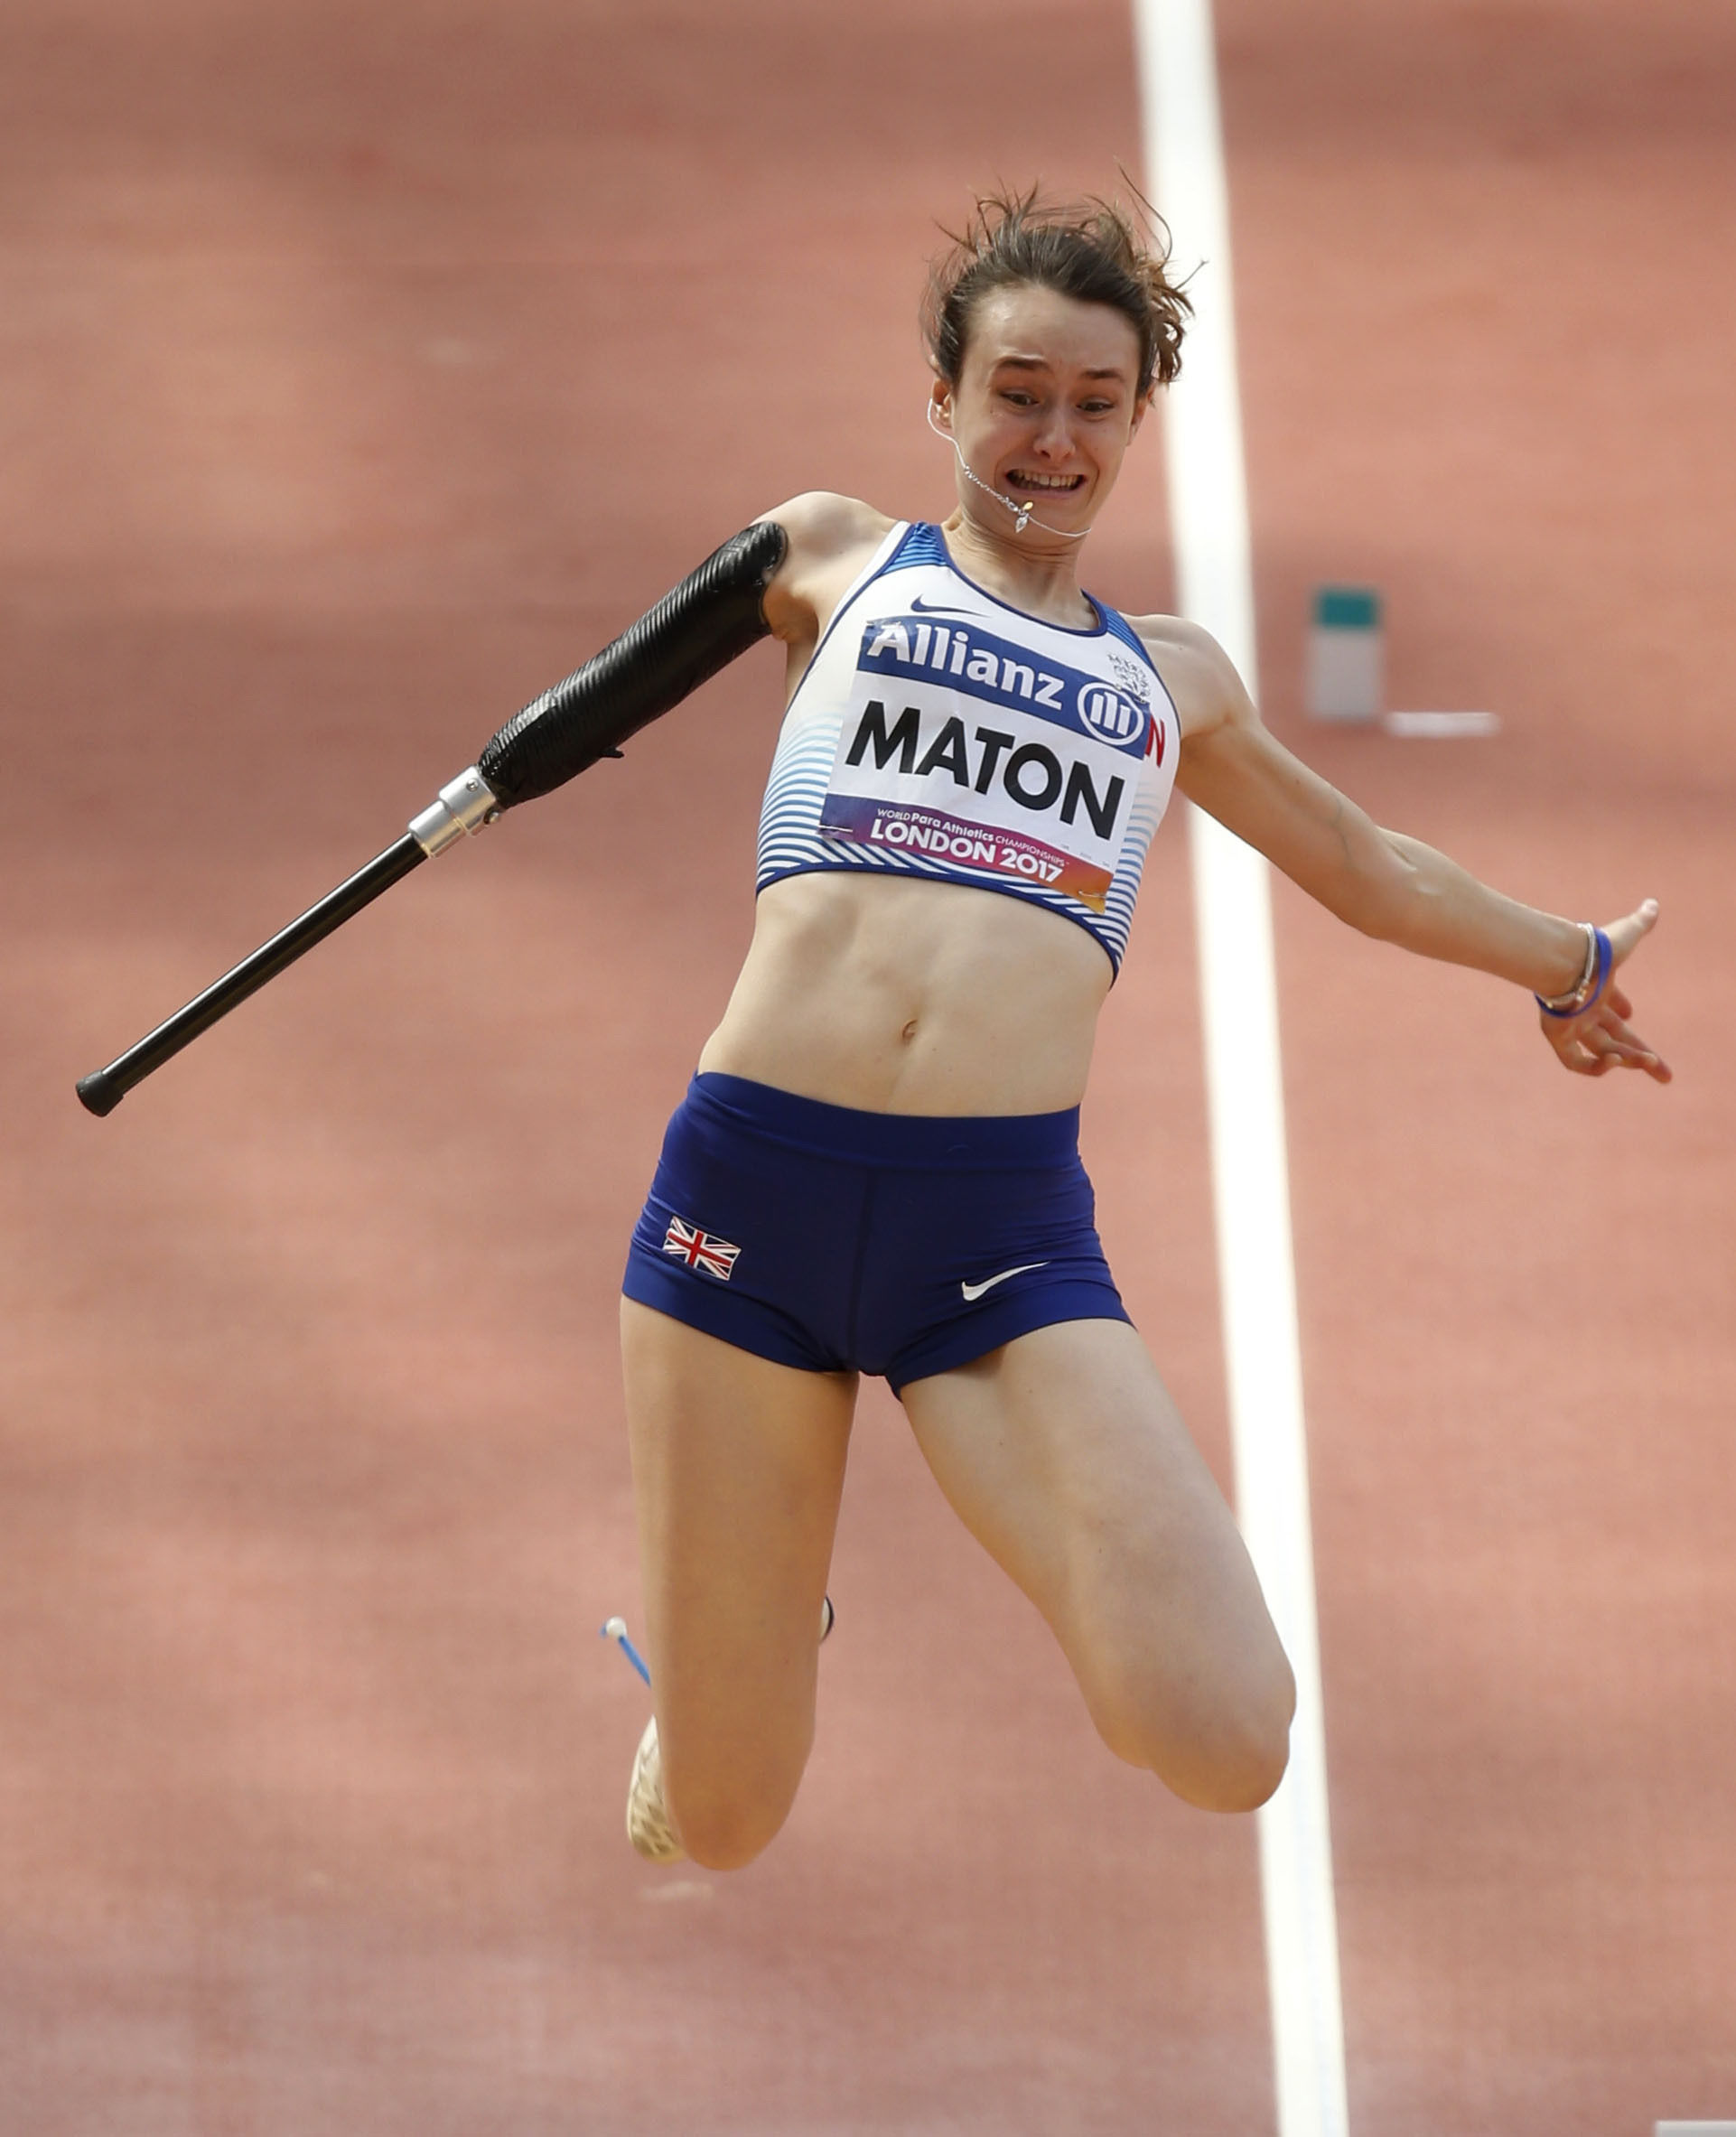 Great Britain's Polly Maton competes in the Women's Long Jump T47 Final during day ten of the 2017 World Para Athletics Championships at London Stadium. PRESS ASSOCIATION Photo. Picture date: Sunday July 23, 2017. See PA story ATHLETICS Para. Phot